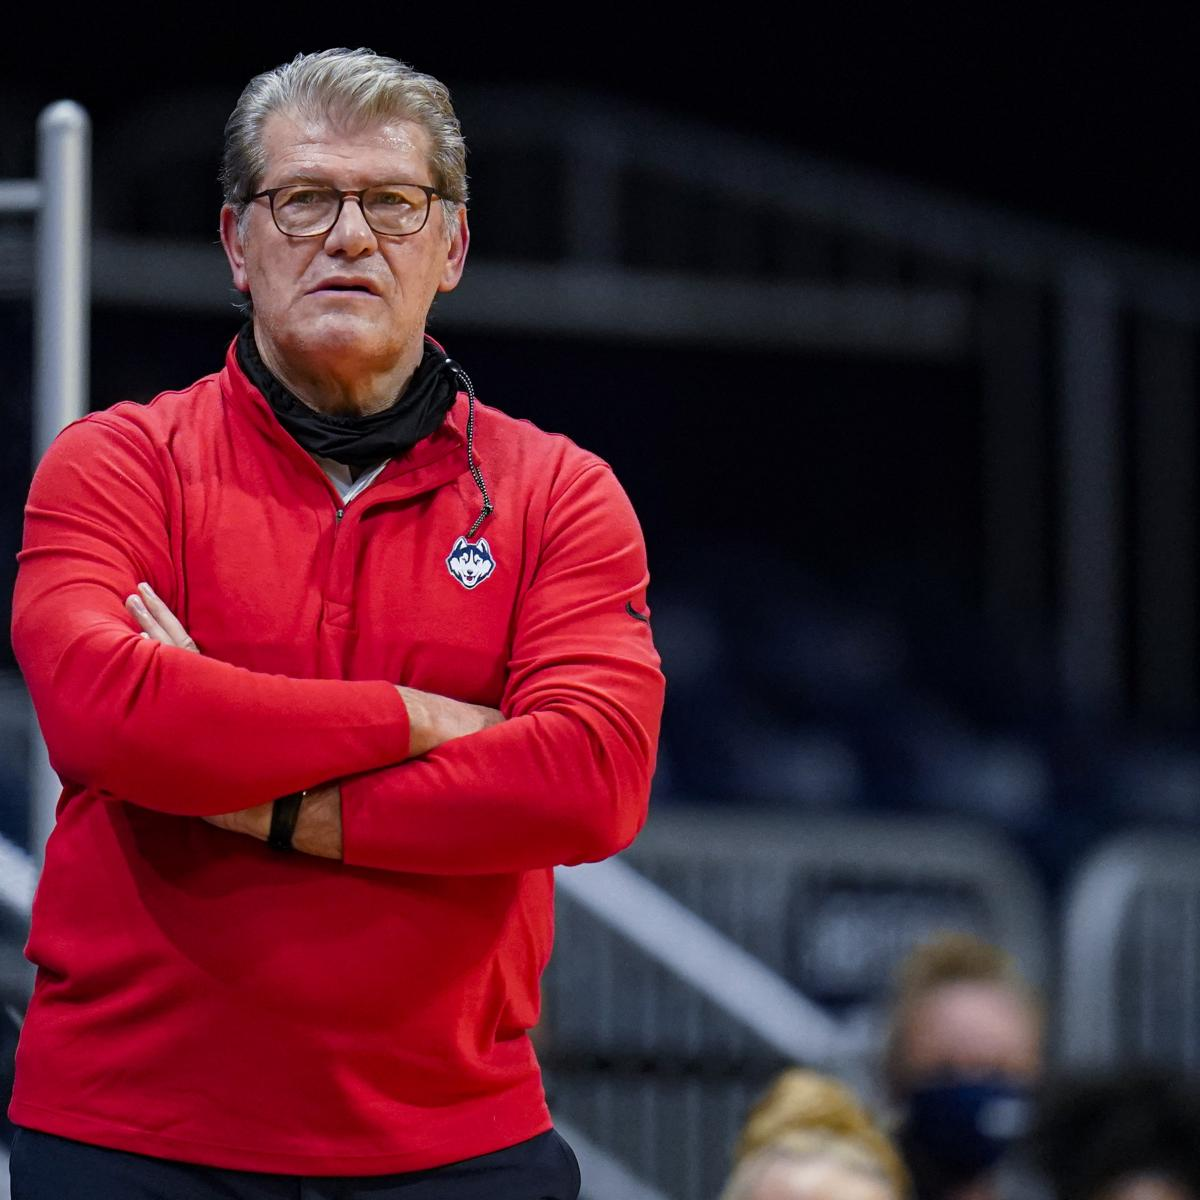 UConn HC Geno Auriemma Tests Positive for COVID-19 Ahead of NCAA Tournament